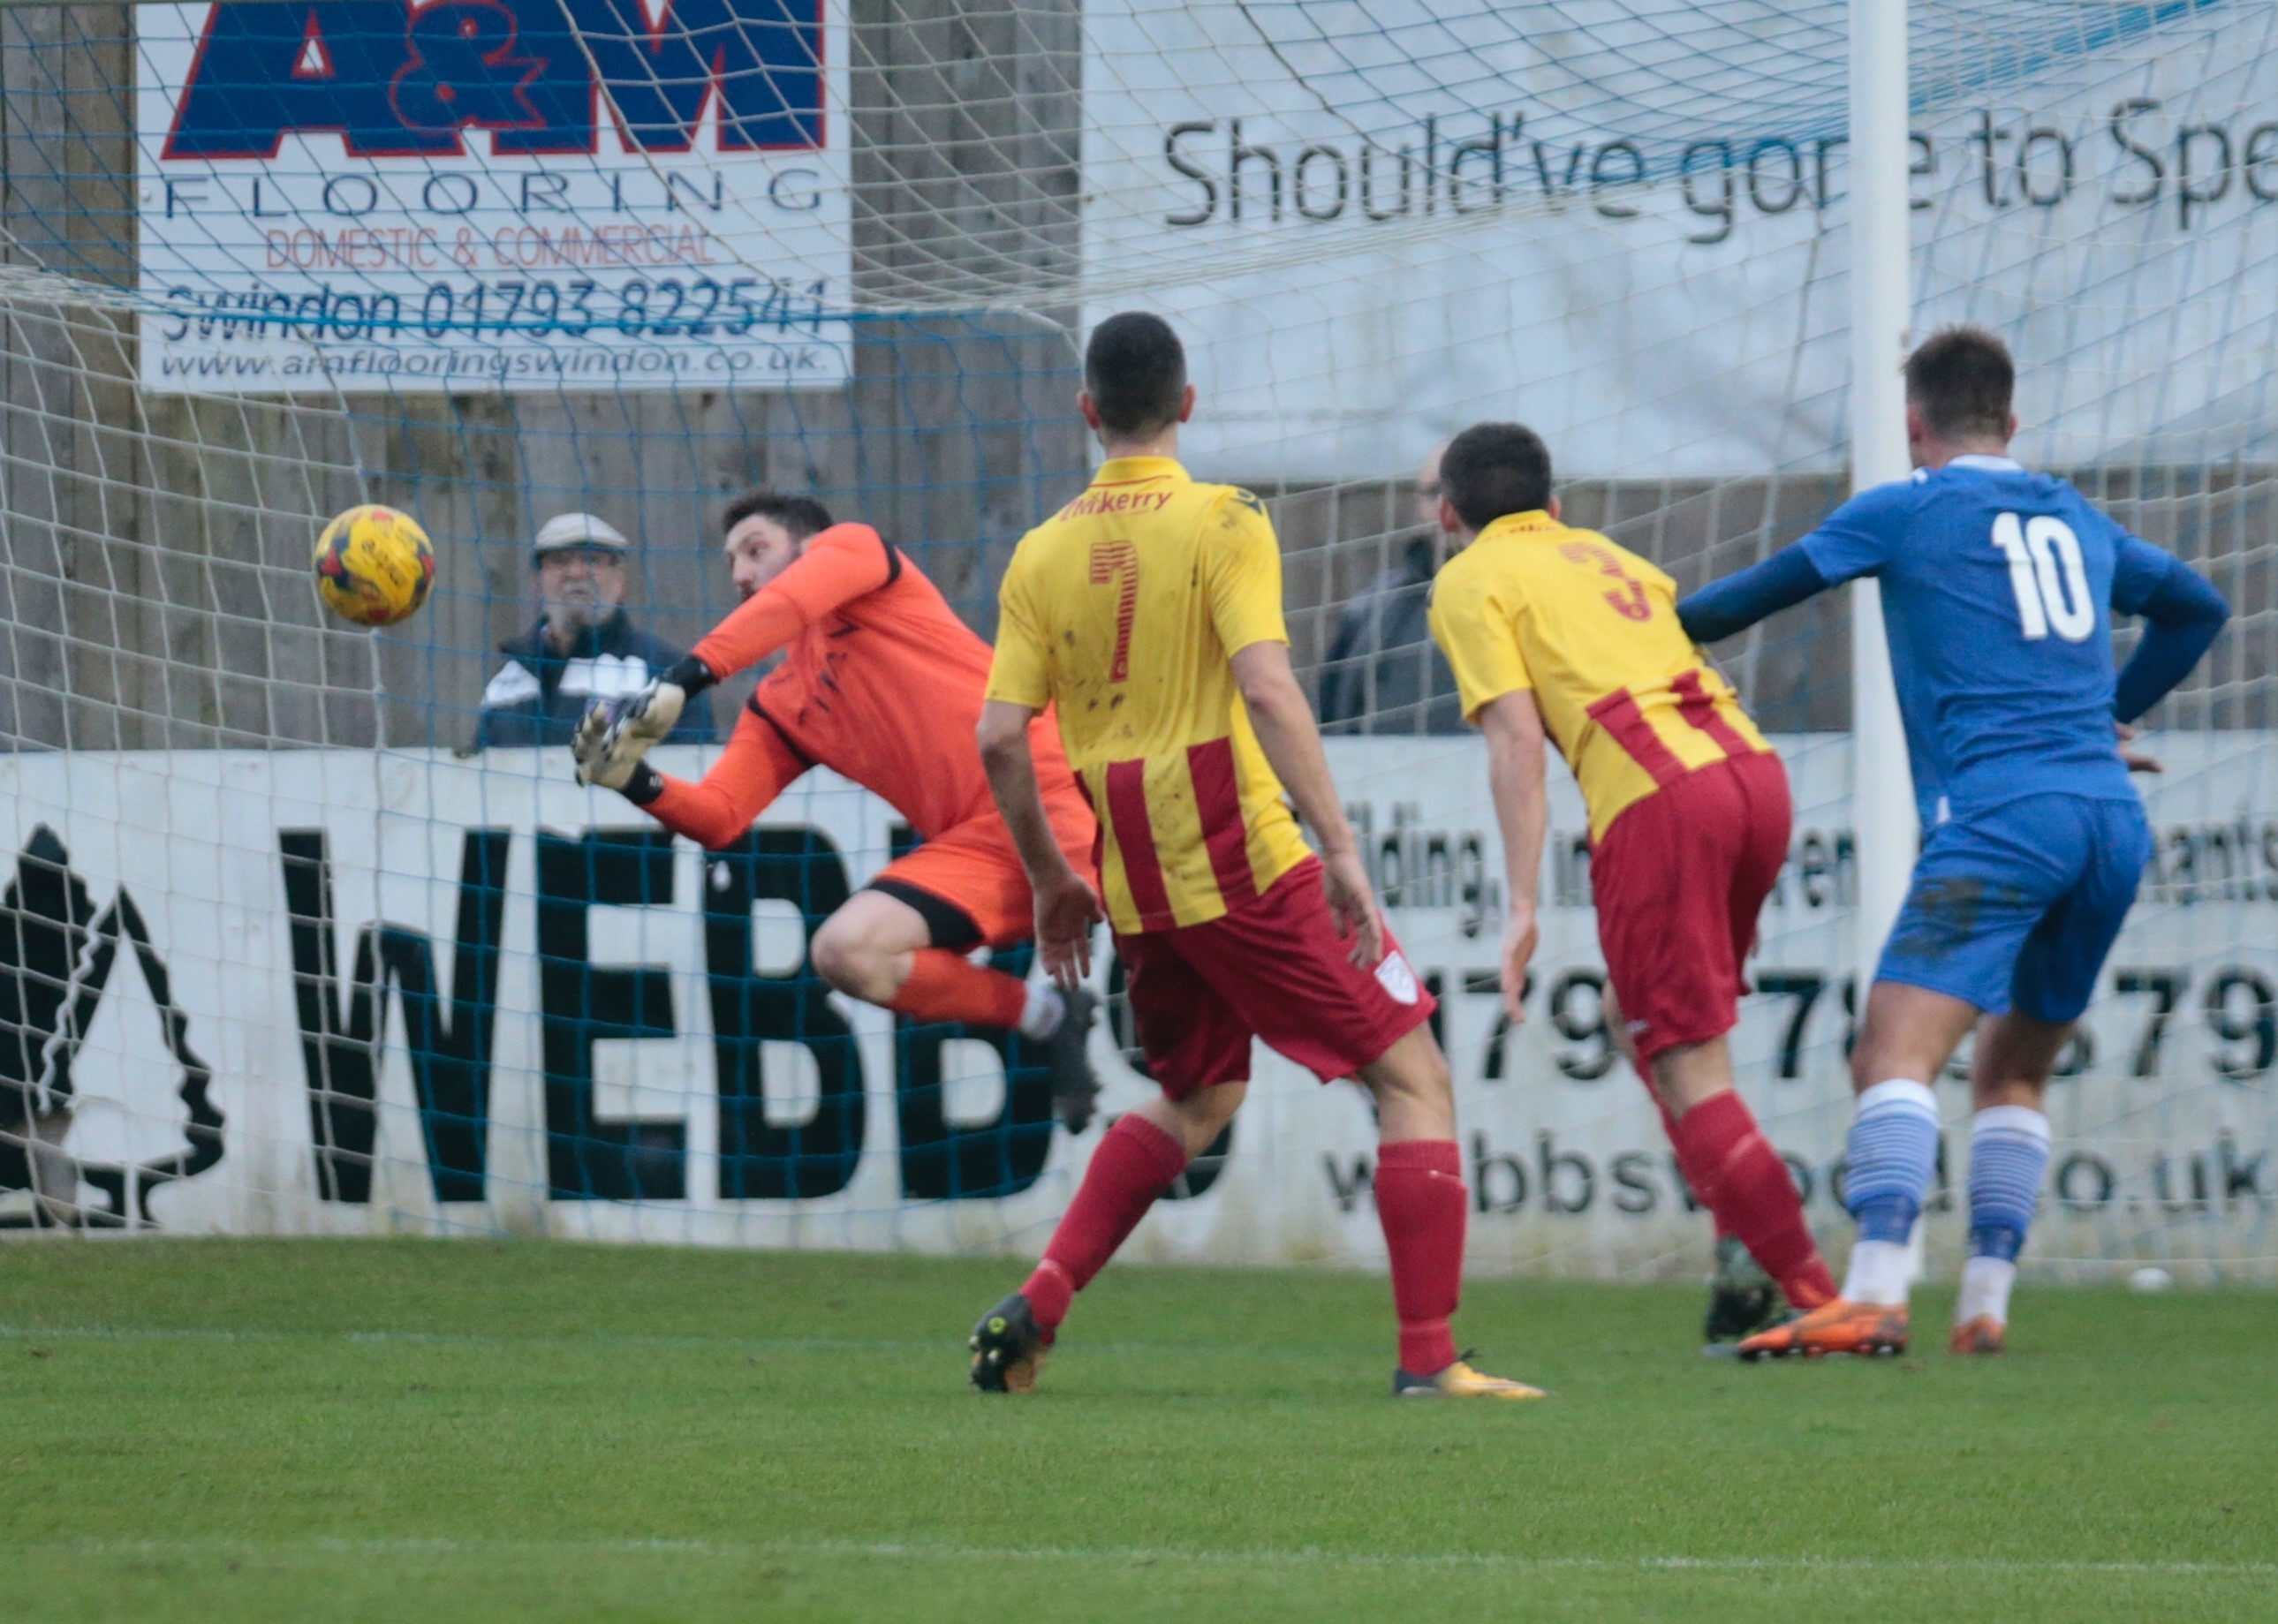 Conor McDonagh heads home our equalising goal